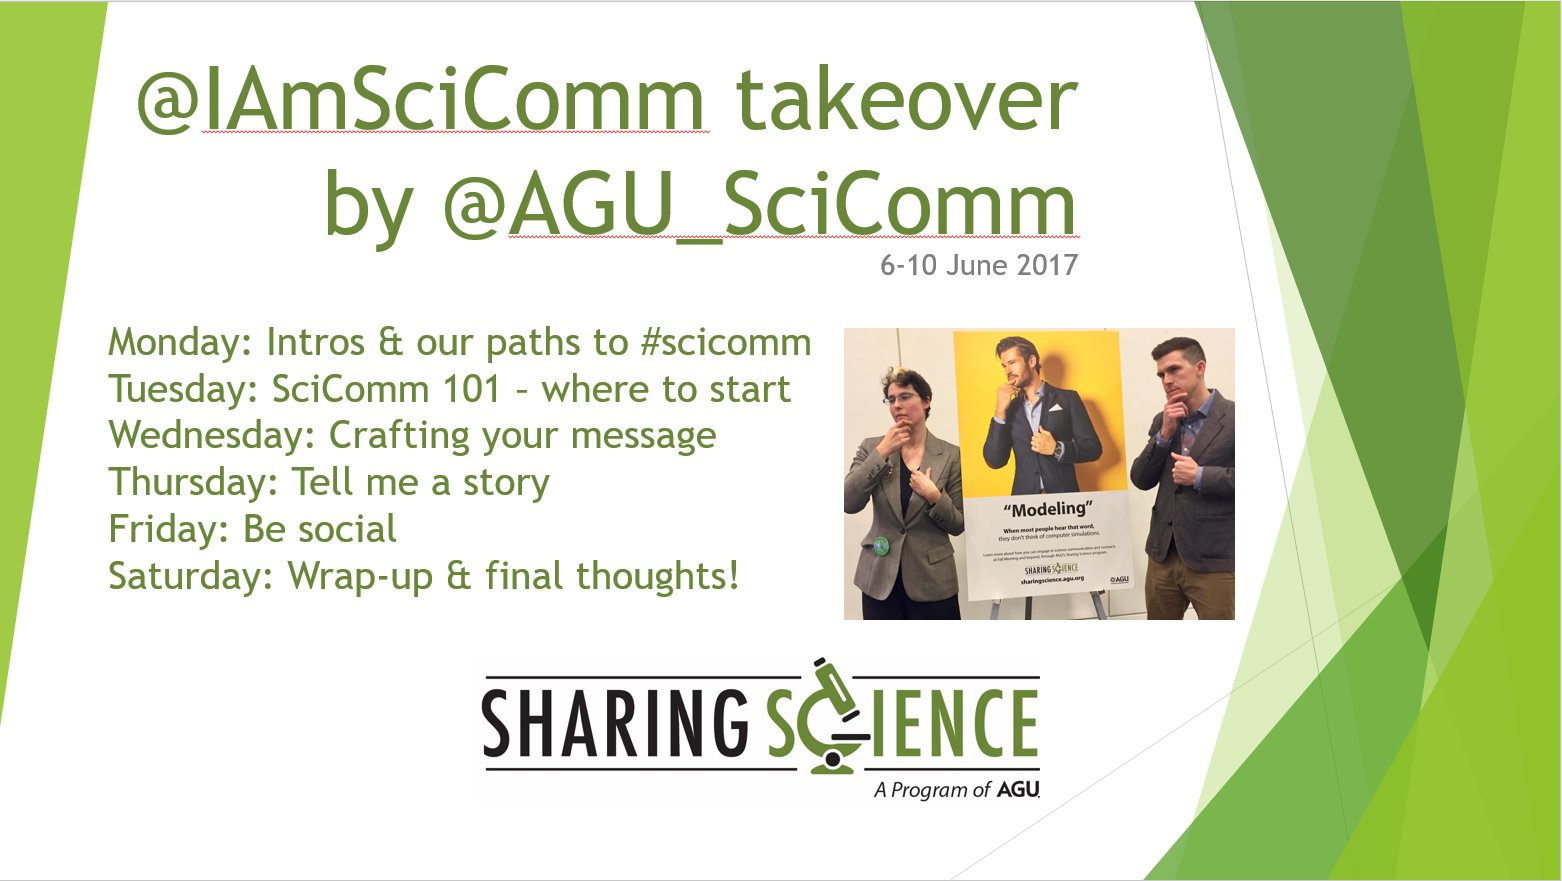 Thumbnail for Sharing Science @iamscicomm takeover!